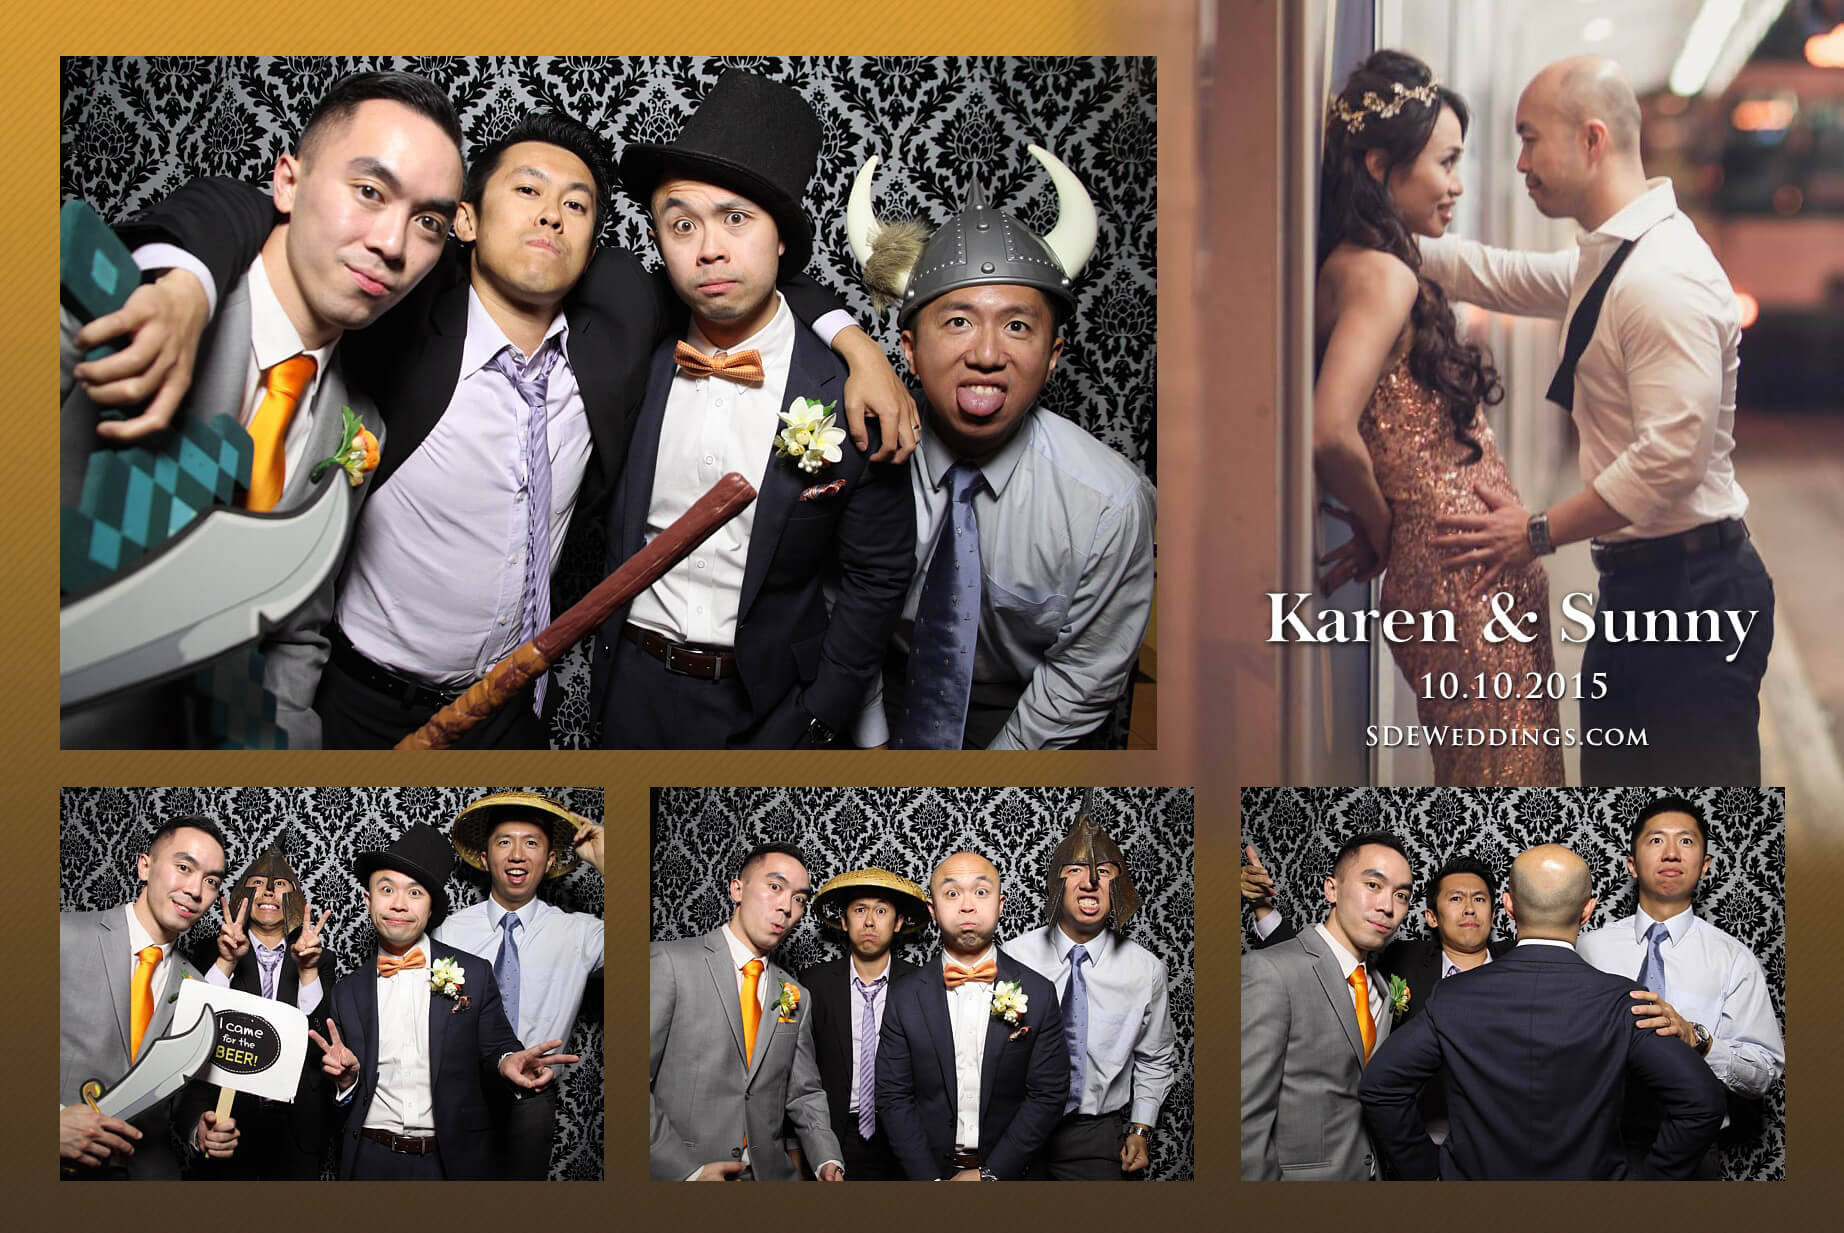 Toronto Fantasy Farm Wedding Photo Booth Rental 10